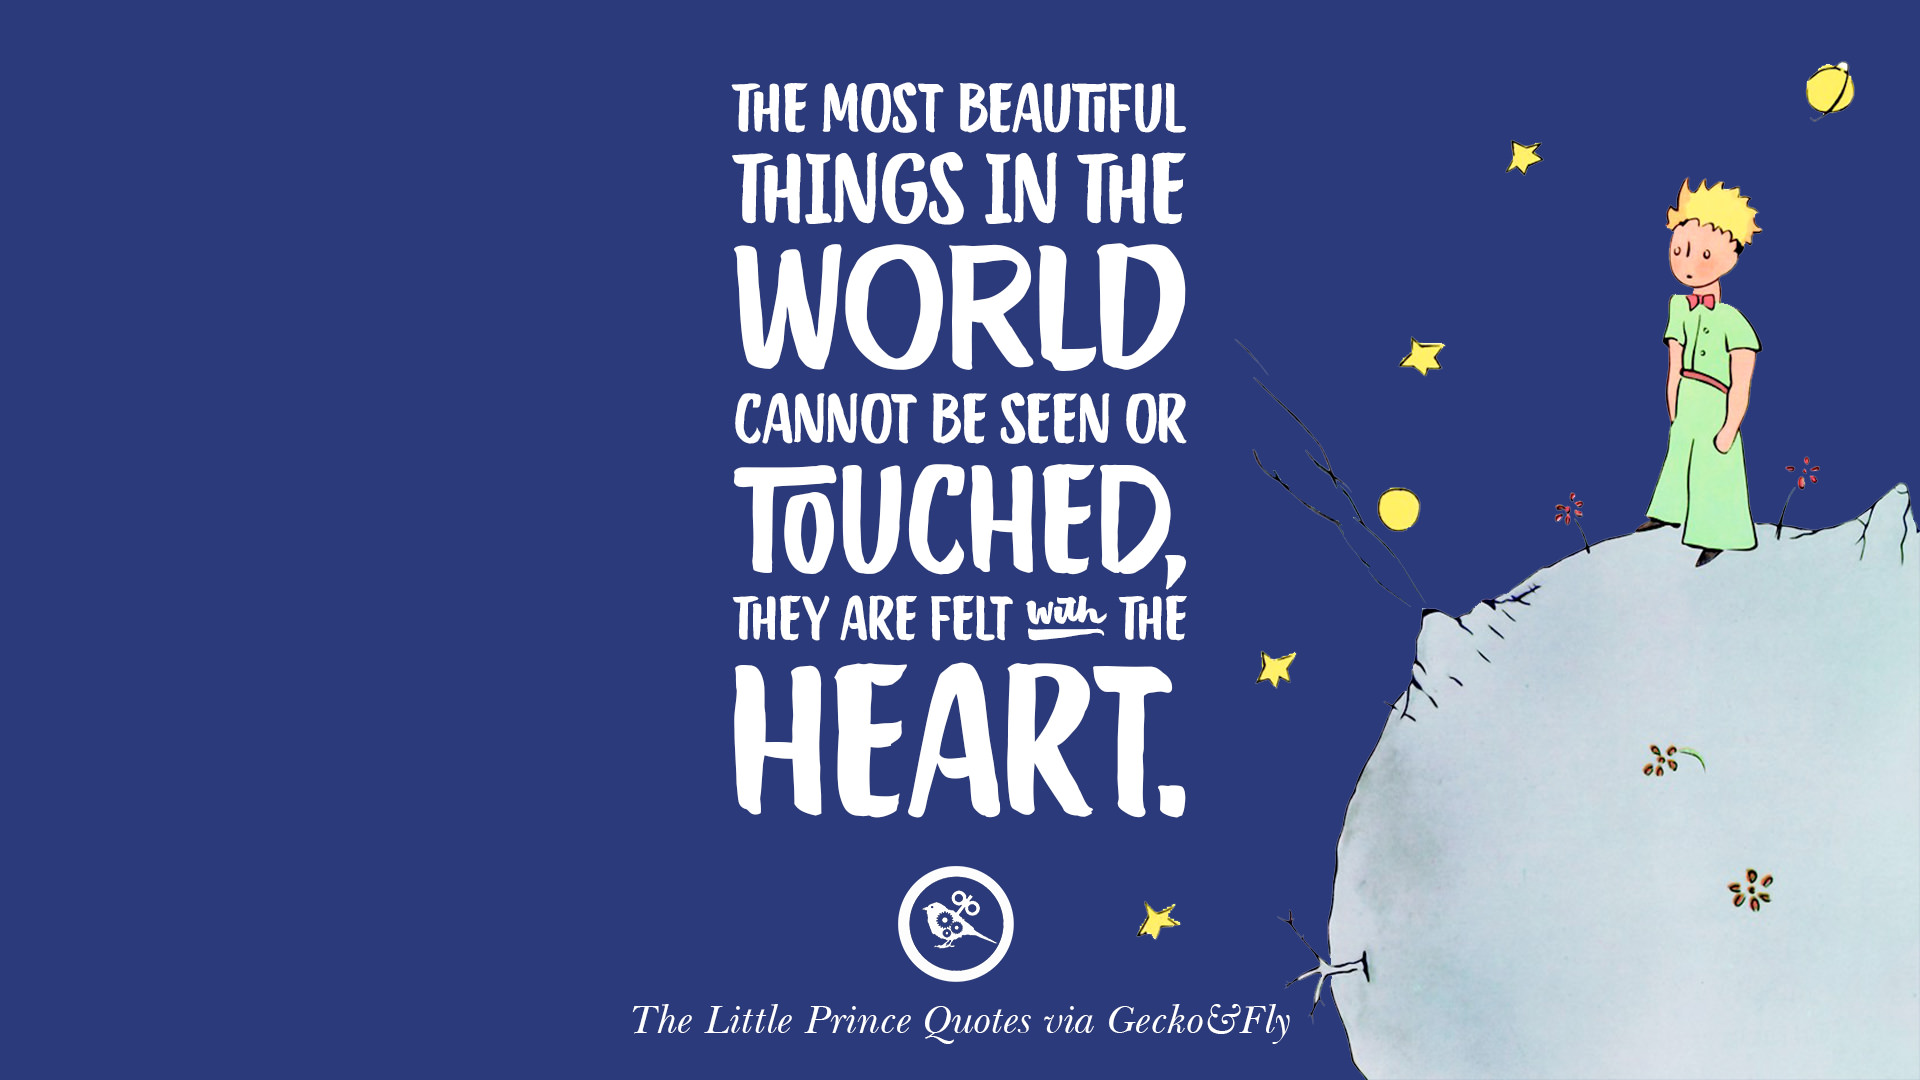 12 Quotes By The Little Prince On Life Lesson, True Love -8446